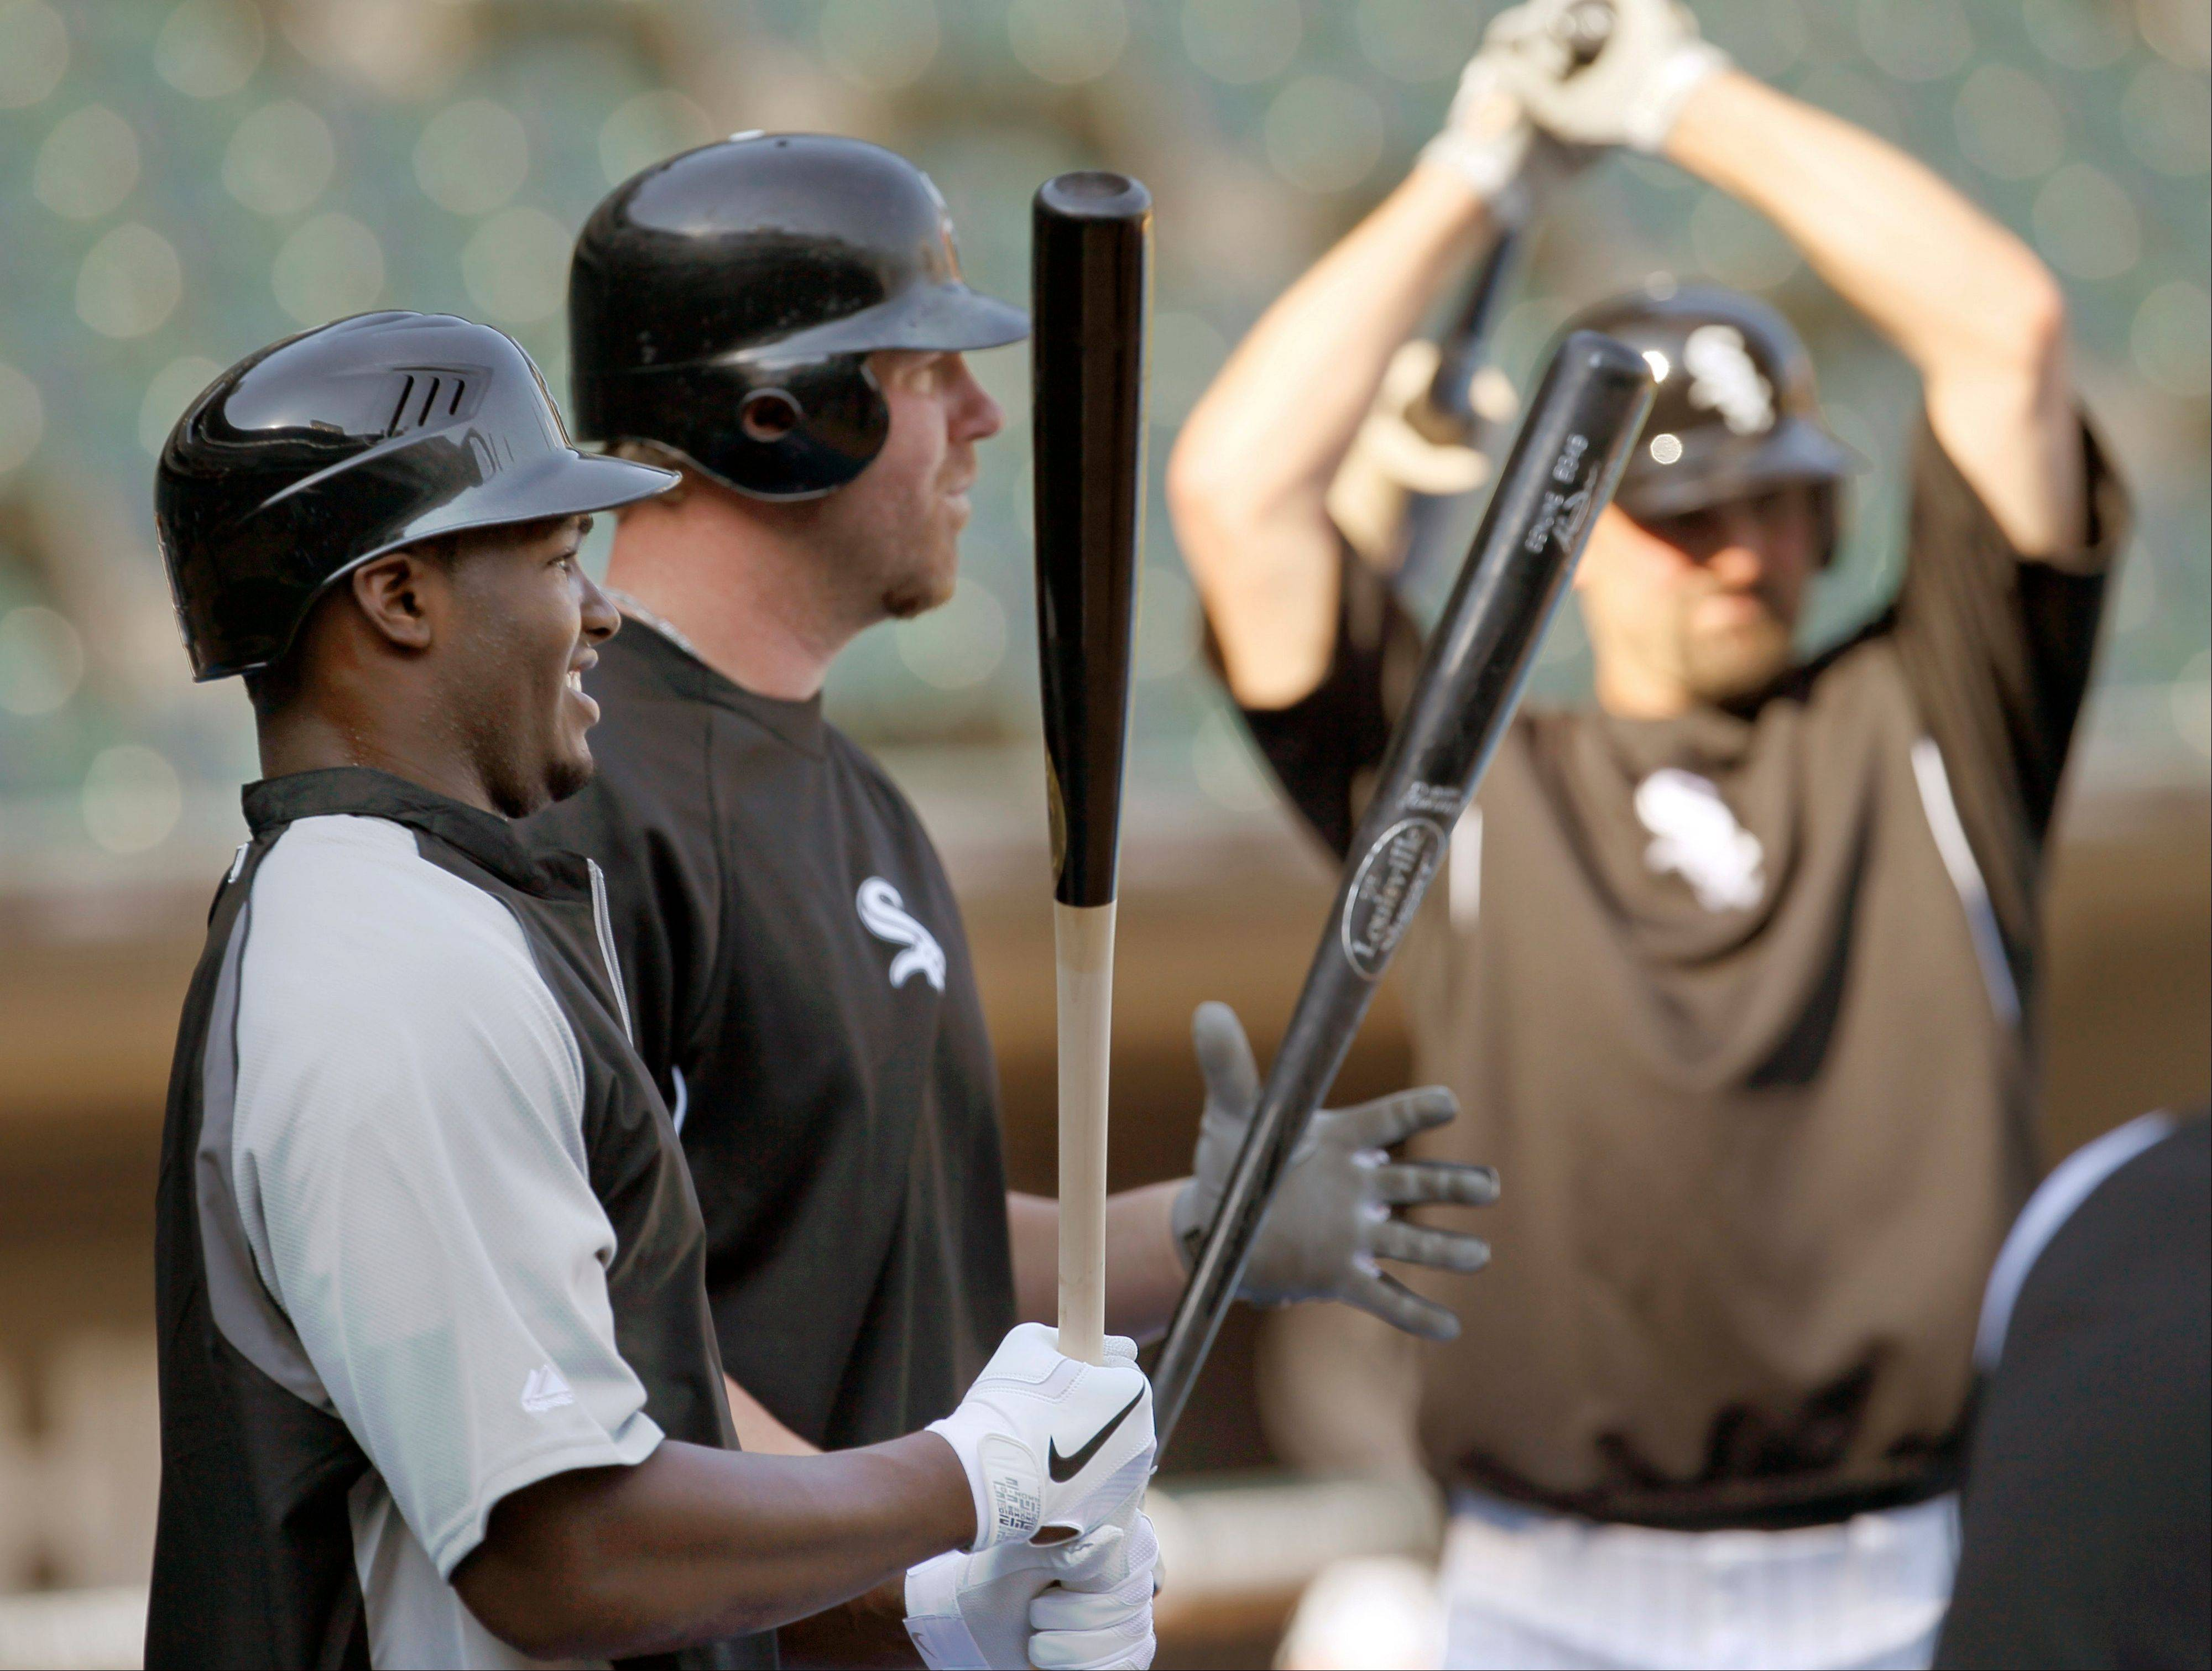 Chicago White Sox first round draft pick outfielder Courtney Hawkins, left, from Carroll High School in Corpus Christi, Texas stands next to Adam Dunn and Paul Konerko, as he participates in batting practice before an interleague baseball game against the Chicago Cubs Monday, June 18, 2012, in Chicago.